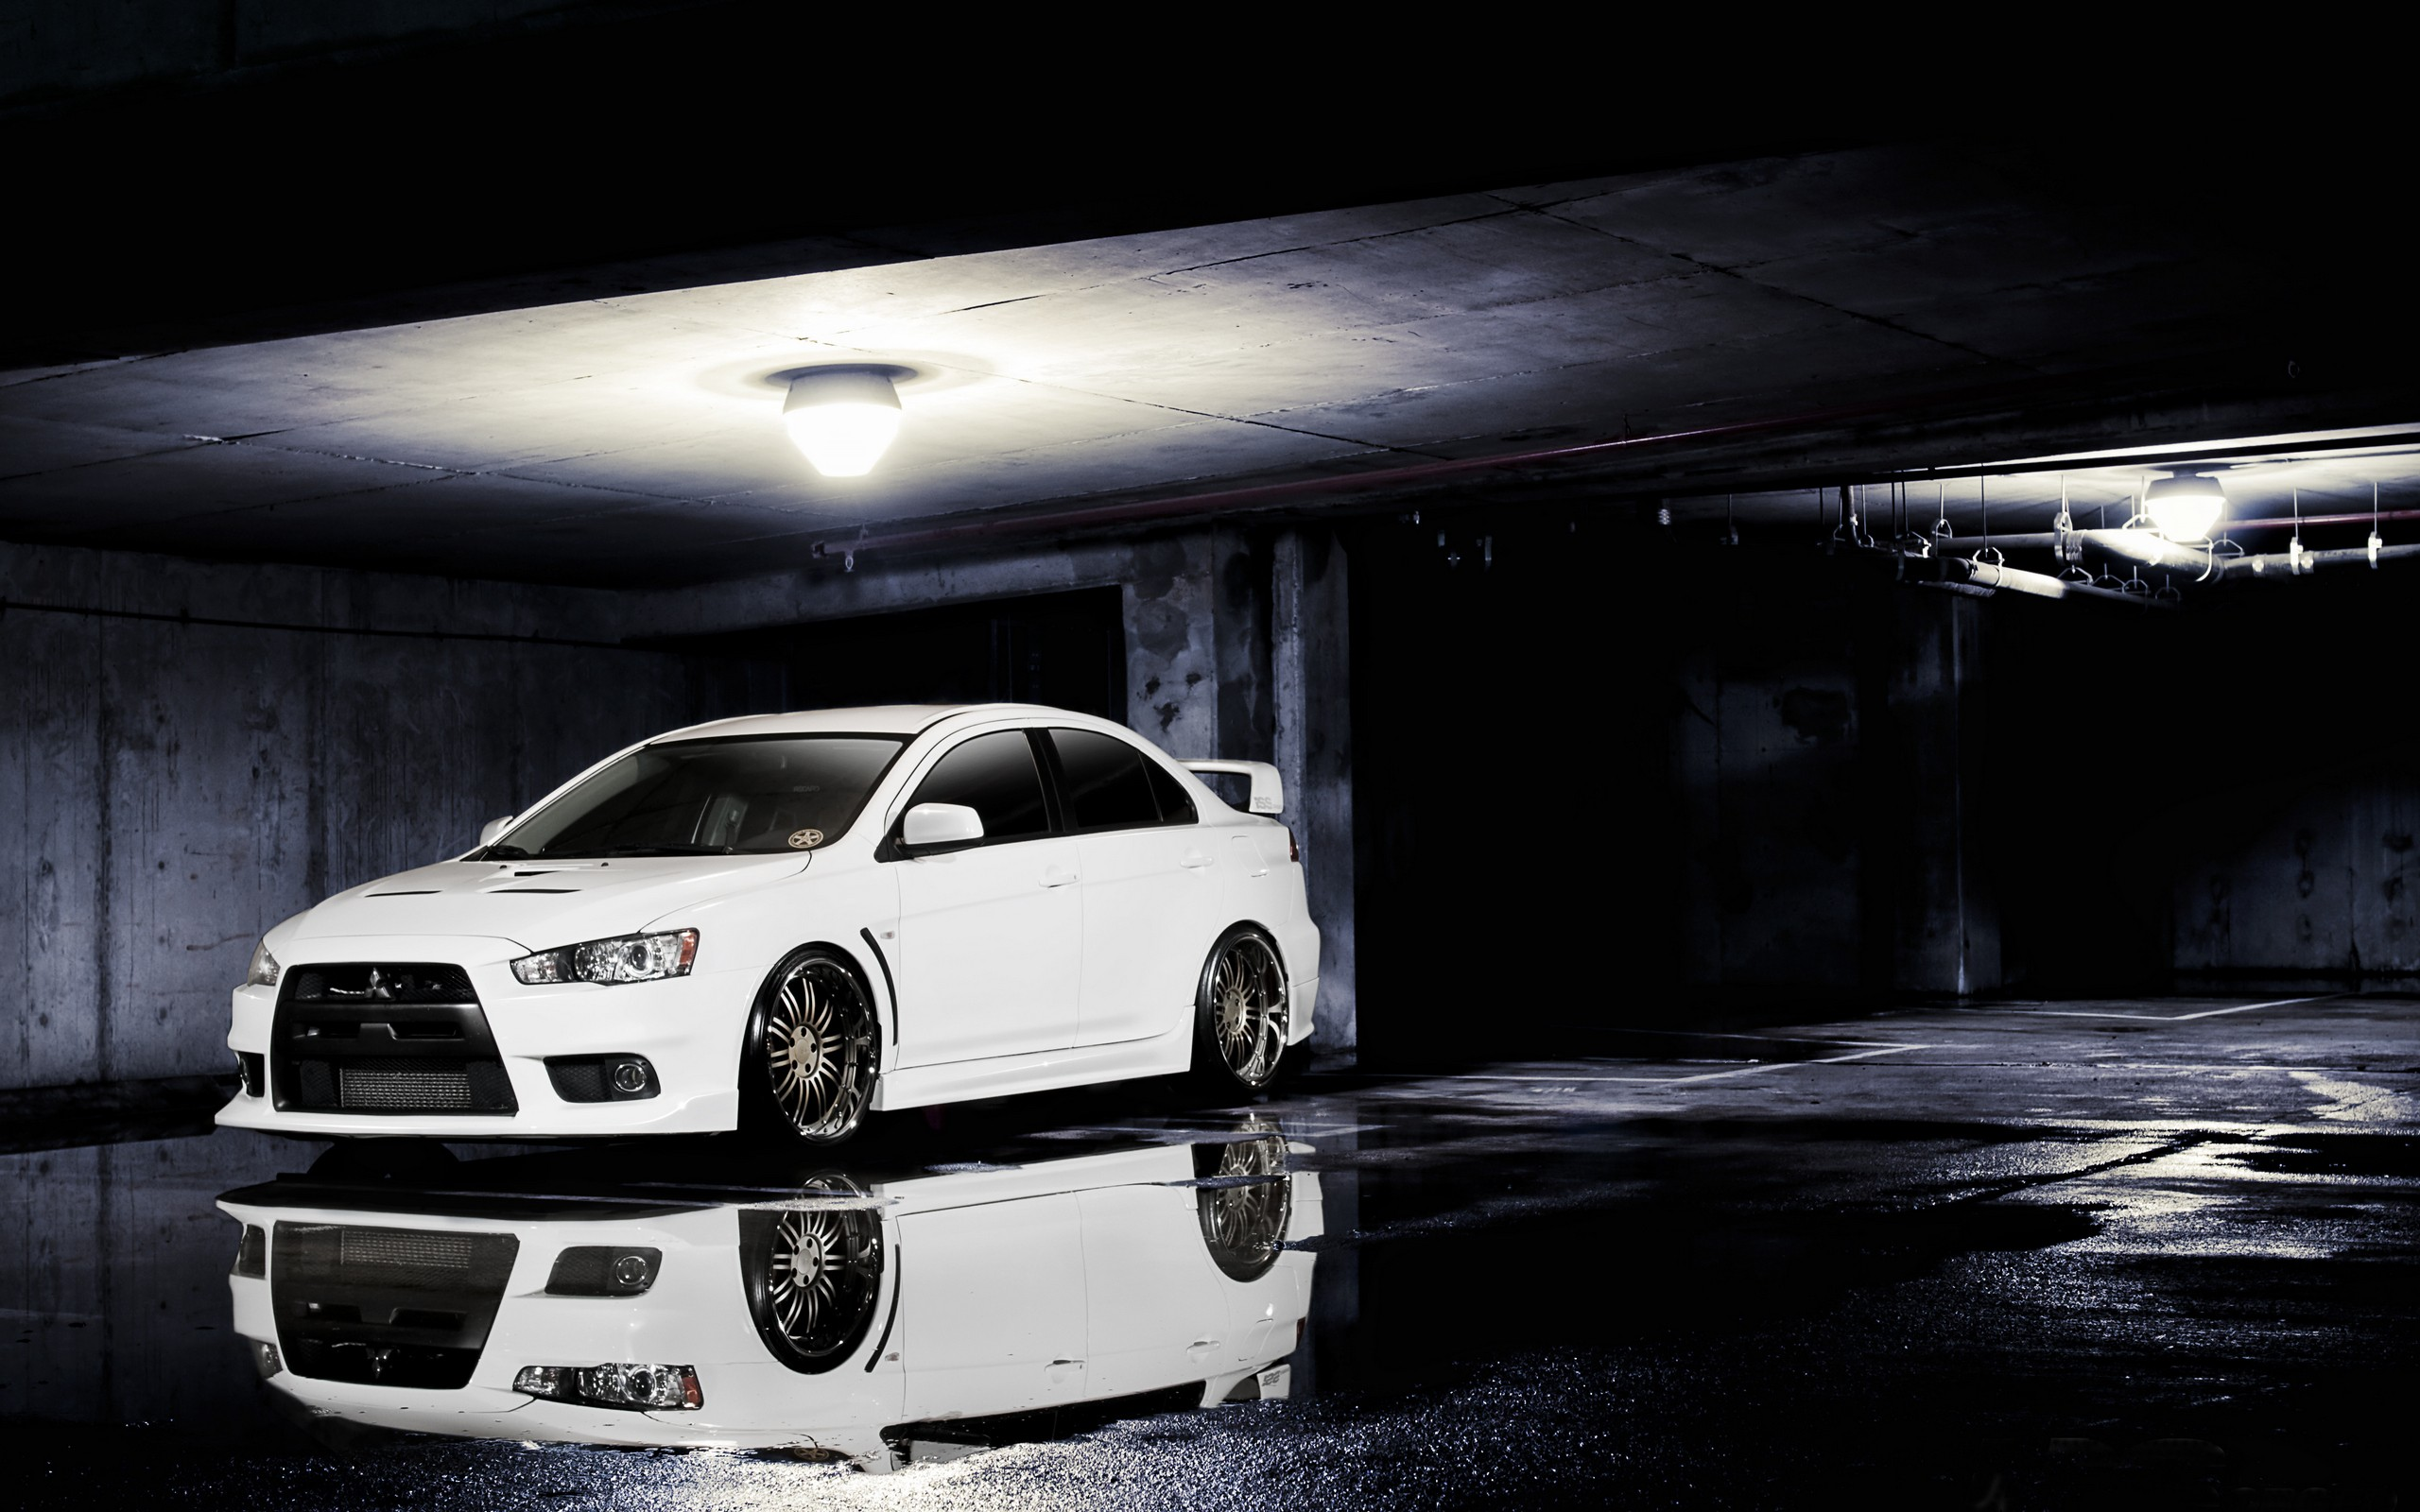 Desktop Mitsubishi Evolution Evo Parking Wallpaper 77 images in 2560x1600